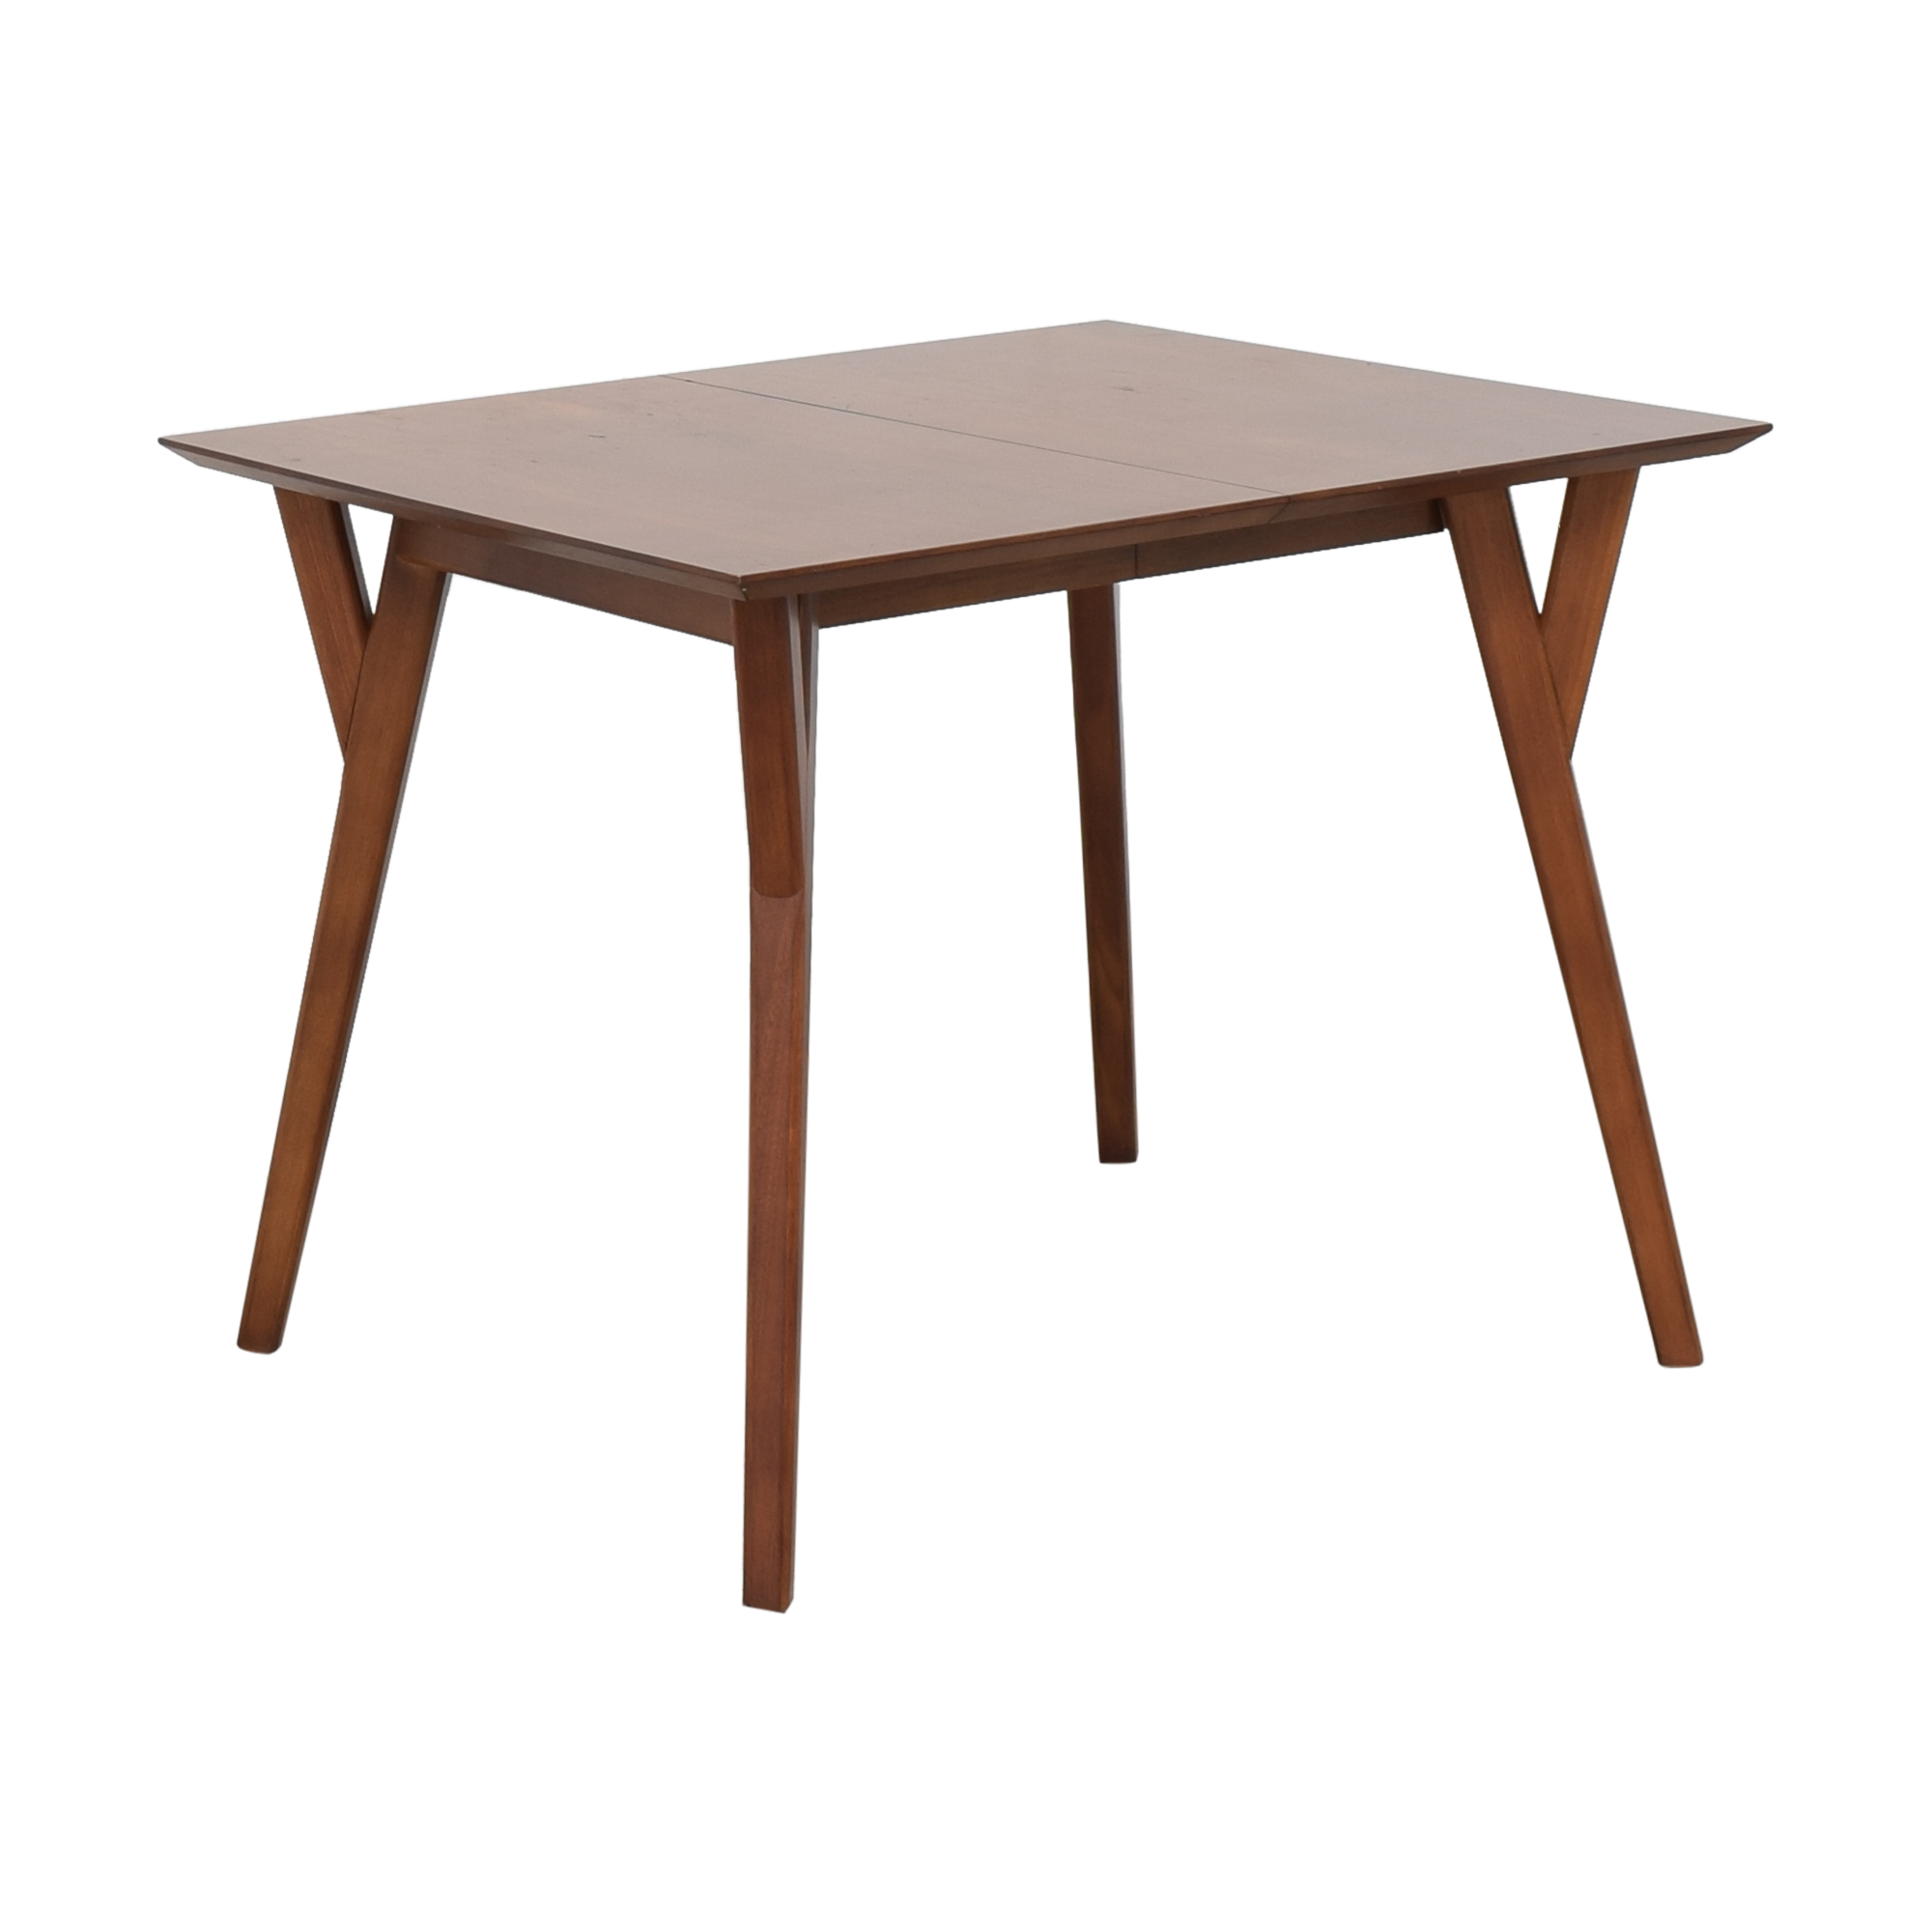 West Elm West Elm Mid Century Expandable Dining Table pa